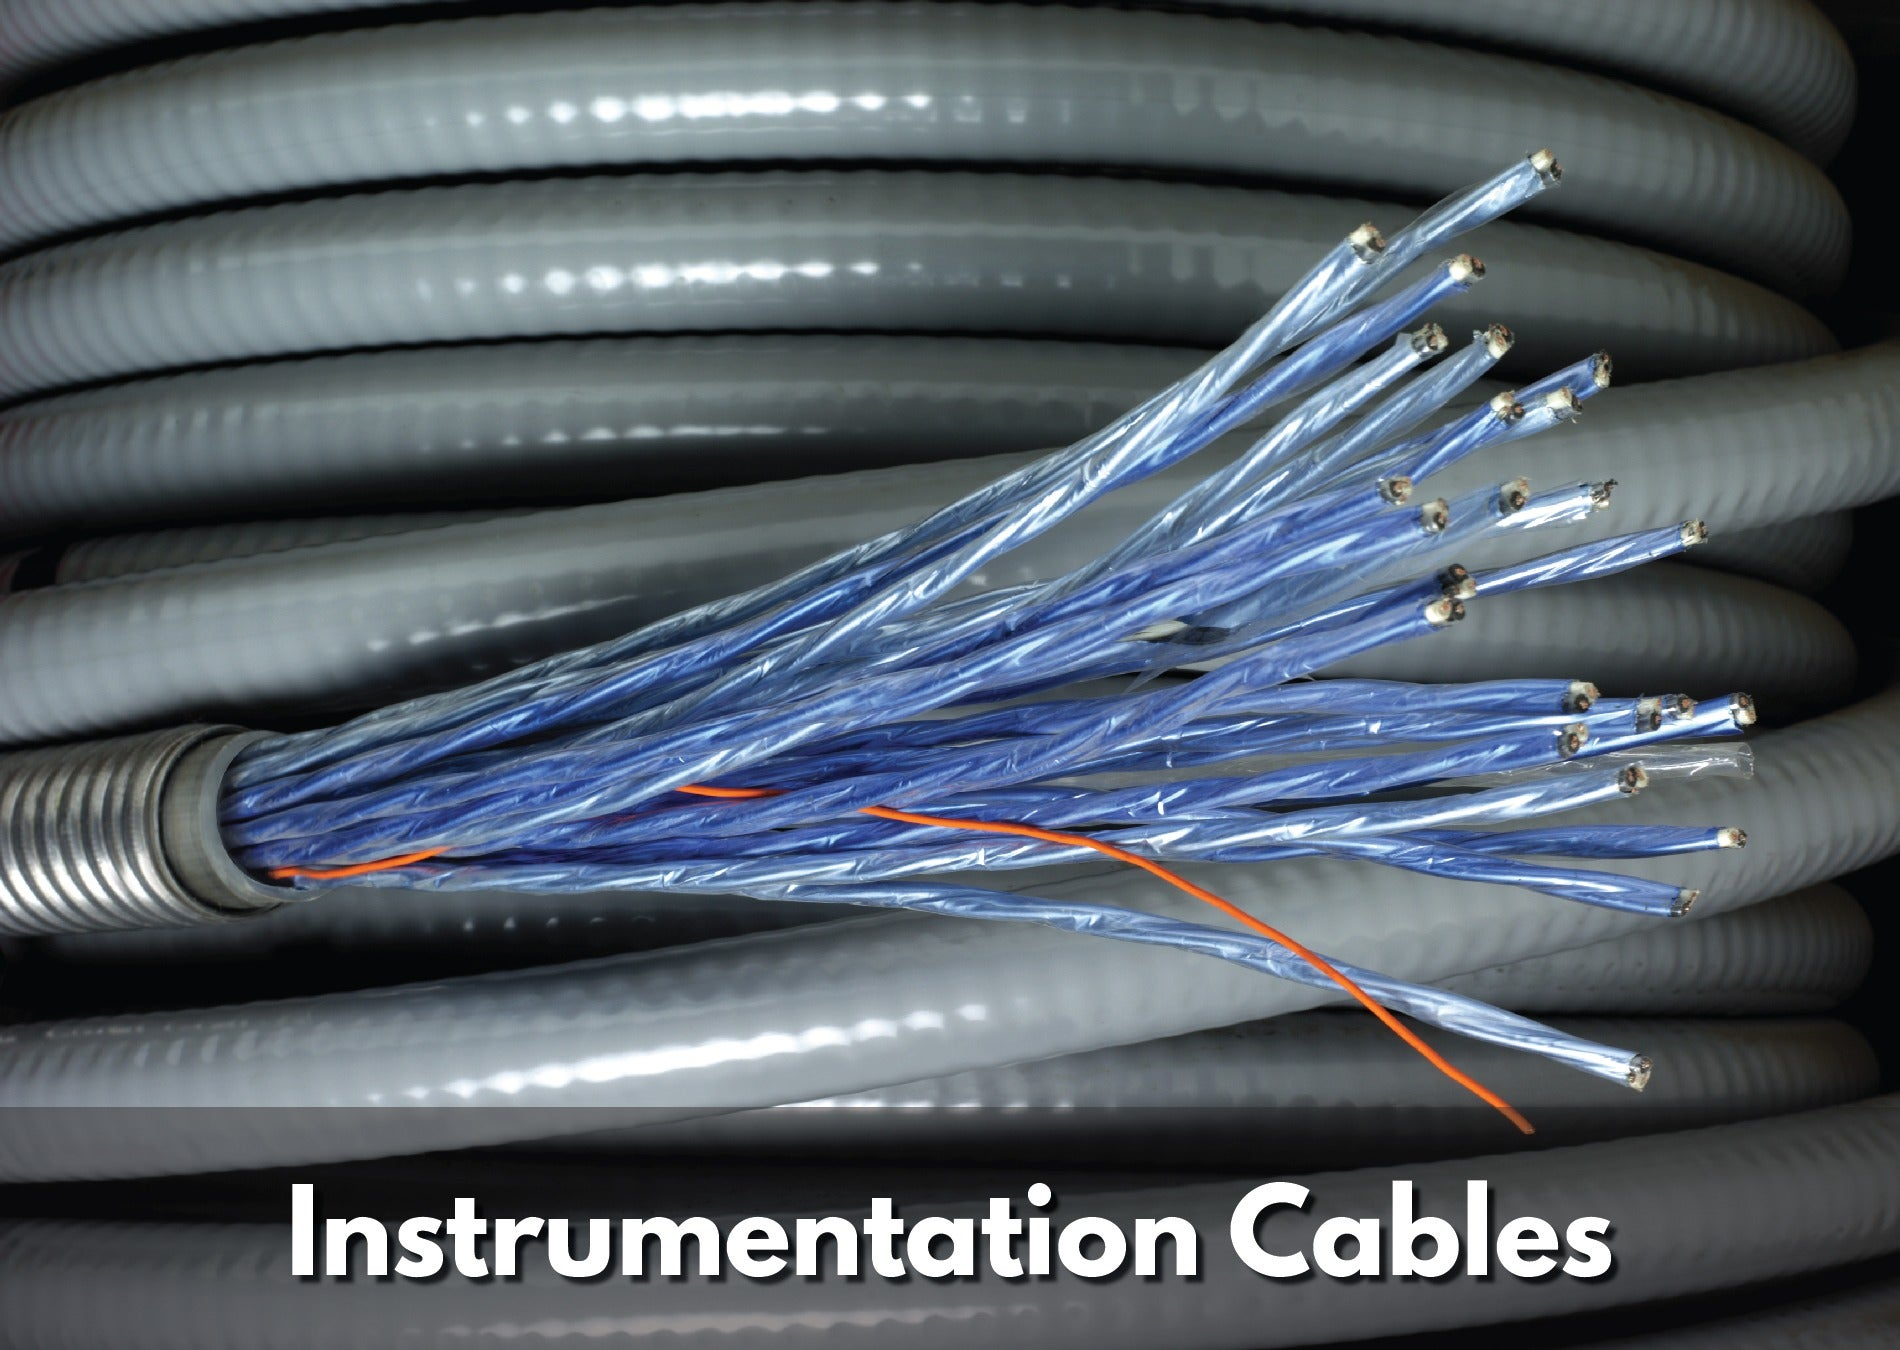 Texcan - View All Products - Instrumentation Cables.jpg